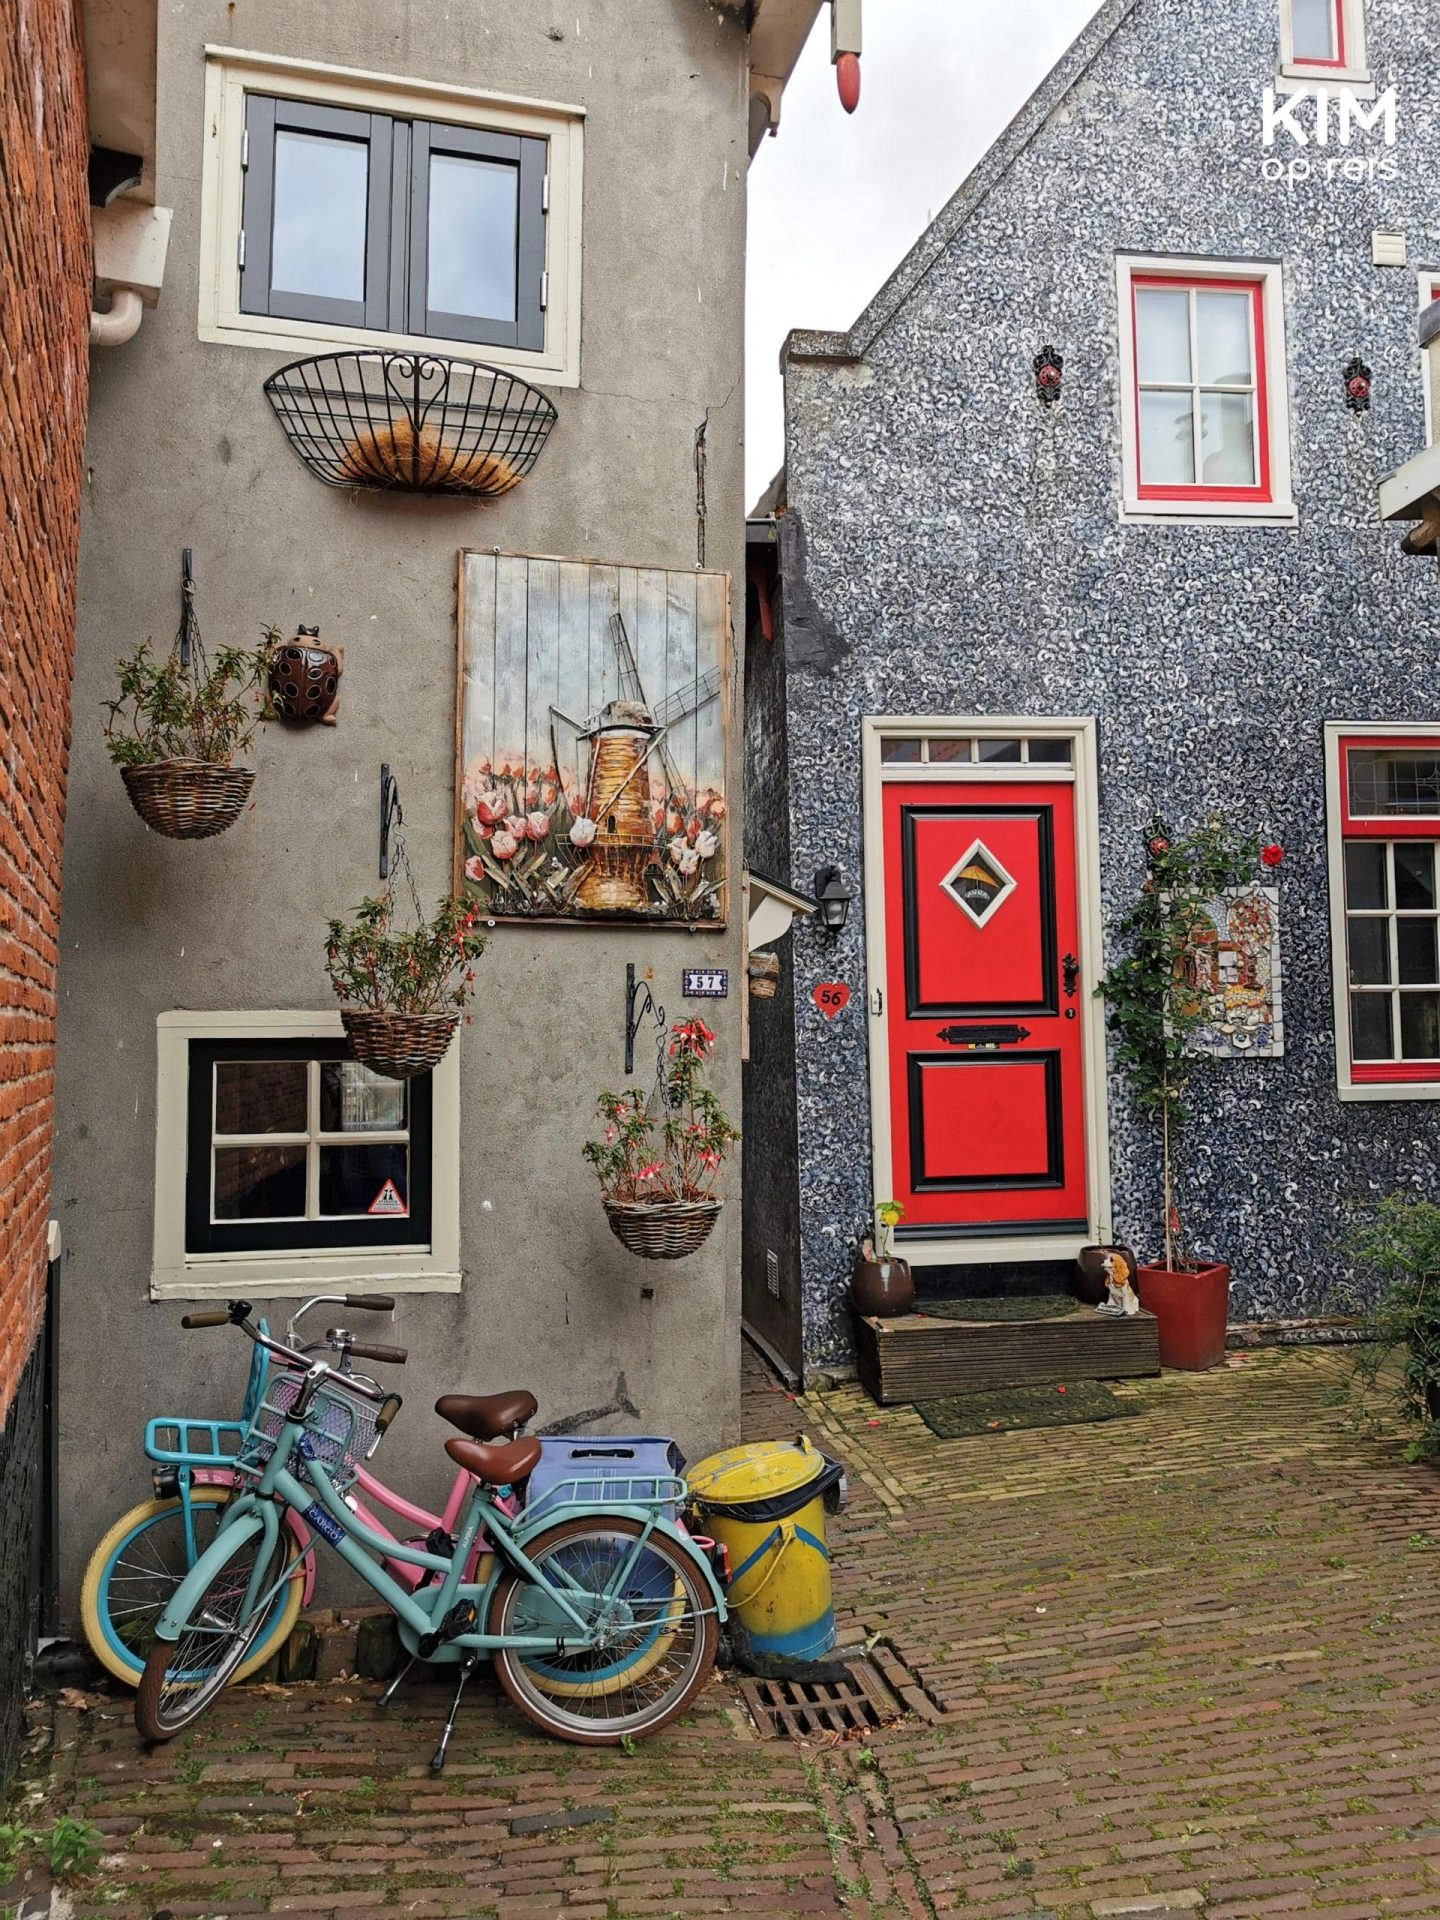 Volendam visit the Doolhof - View through to a gray-colored house with red details, hanging flower pots, and two small bicycles in front